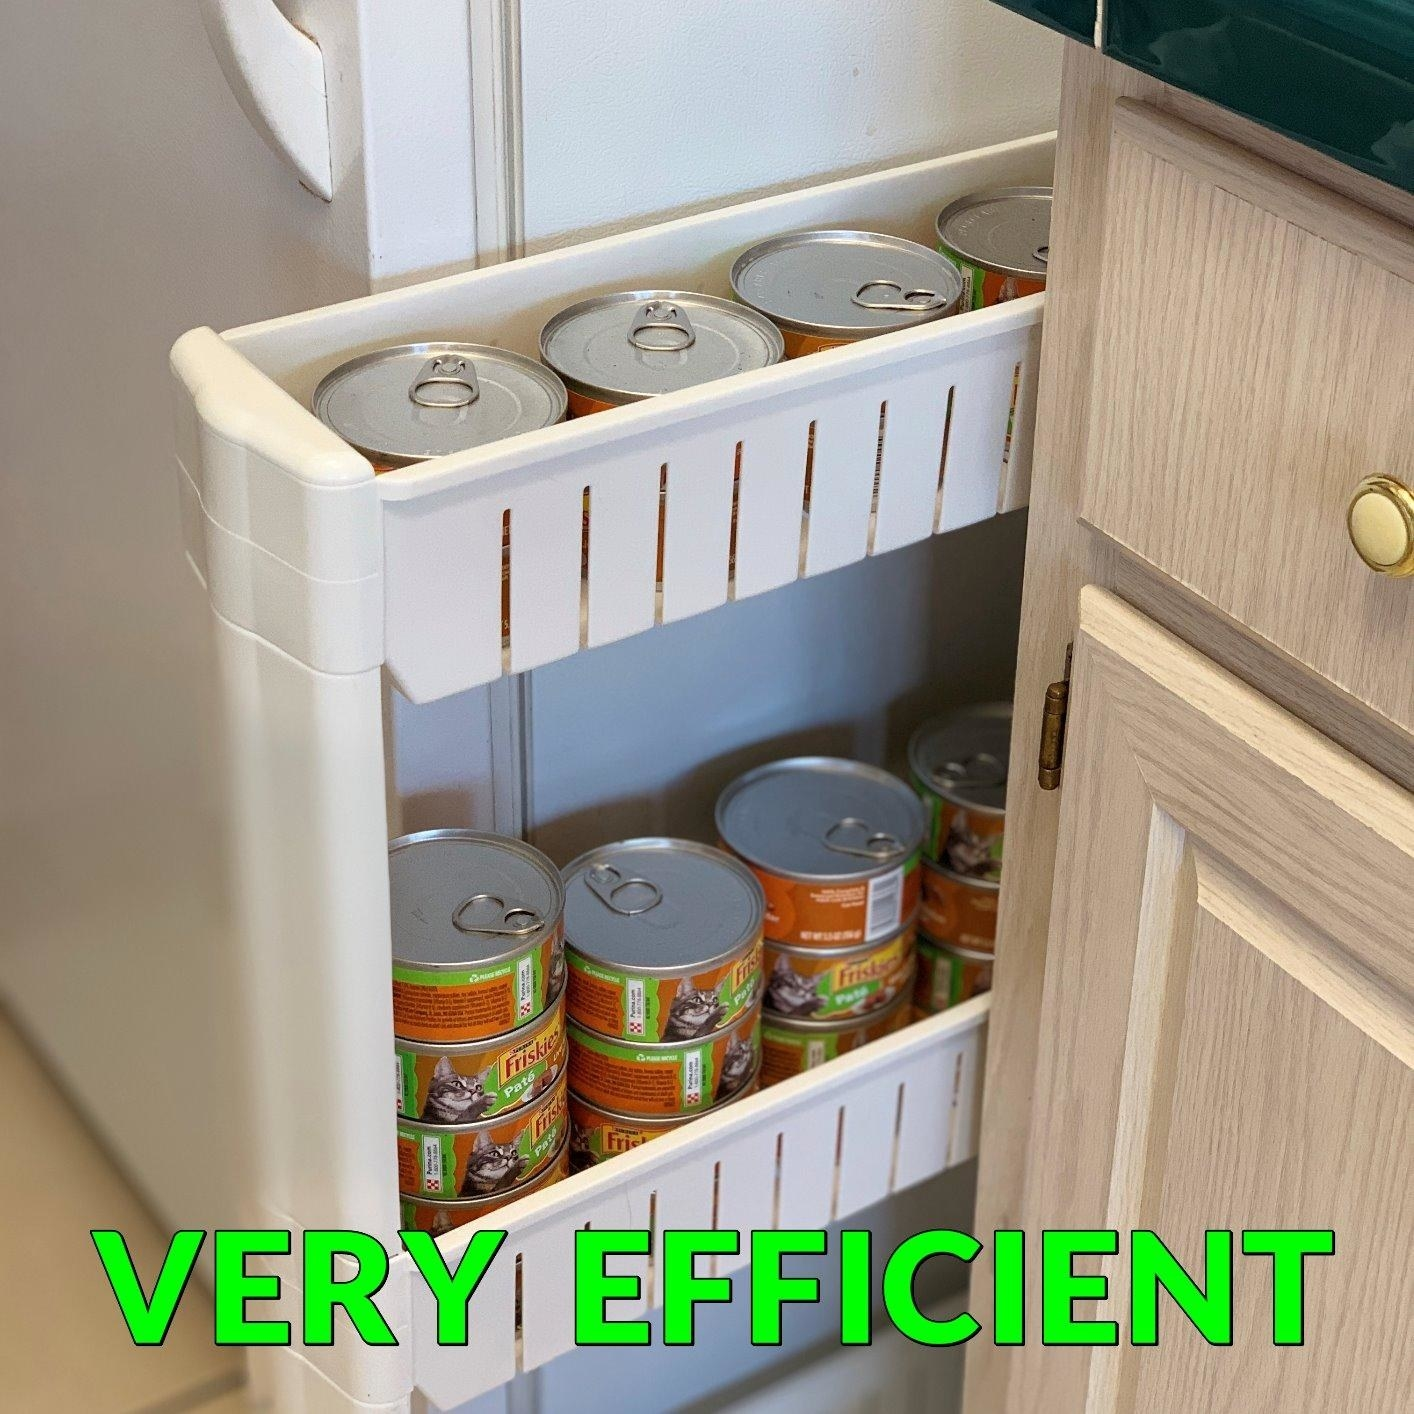 white storage unit holding cans of cat food sliding out from between a fridge and counter, with the text